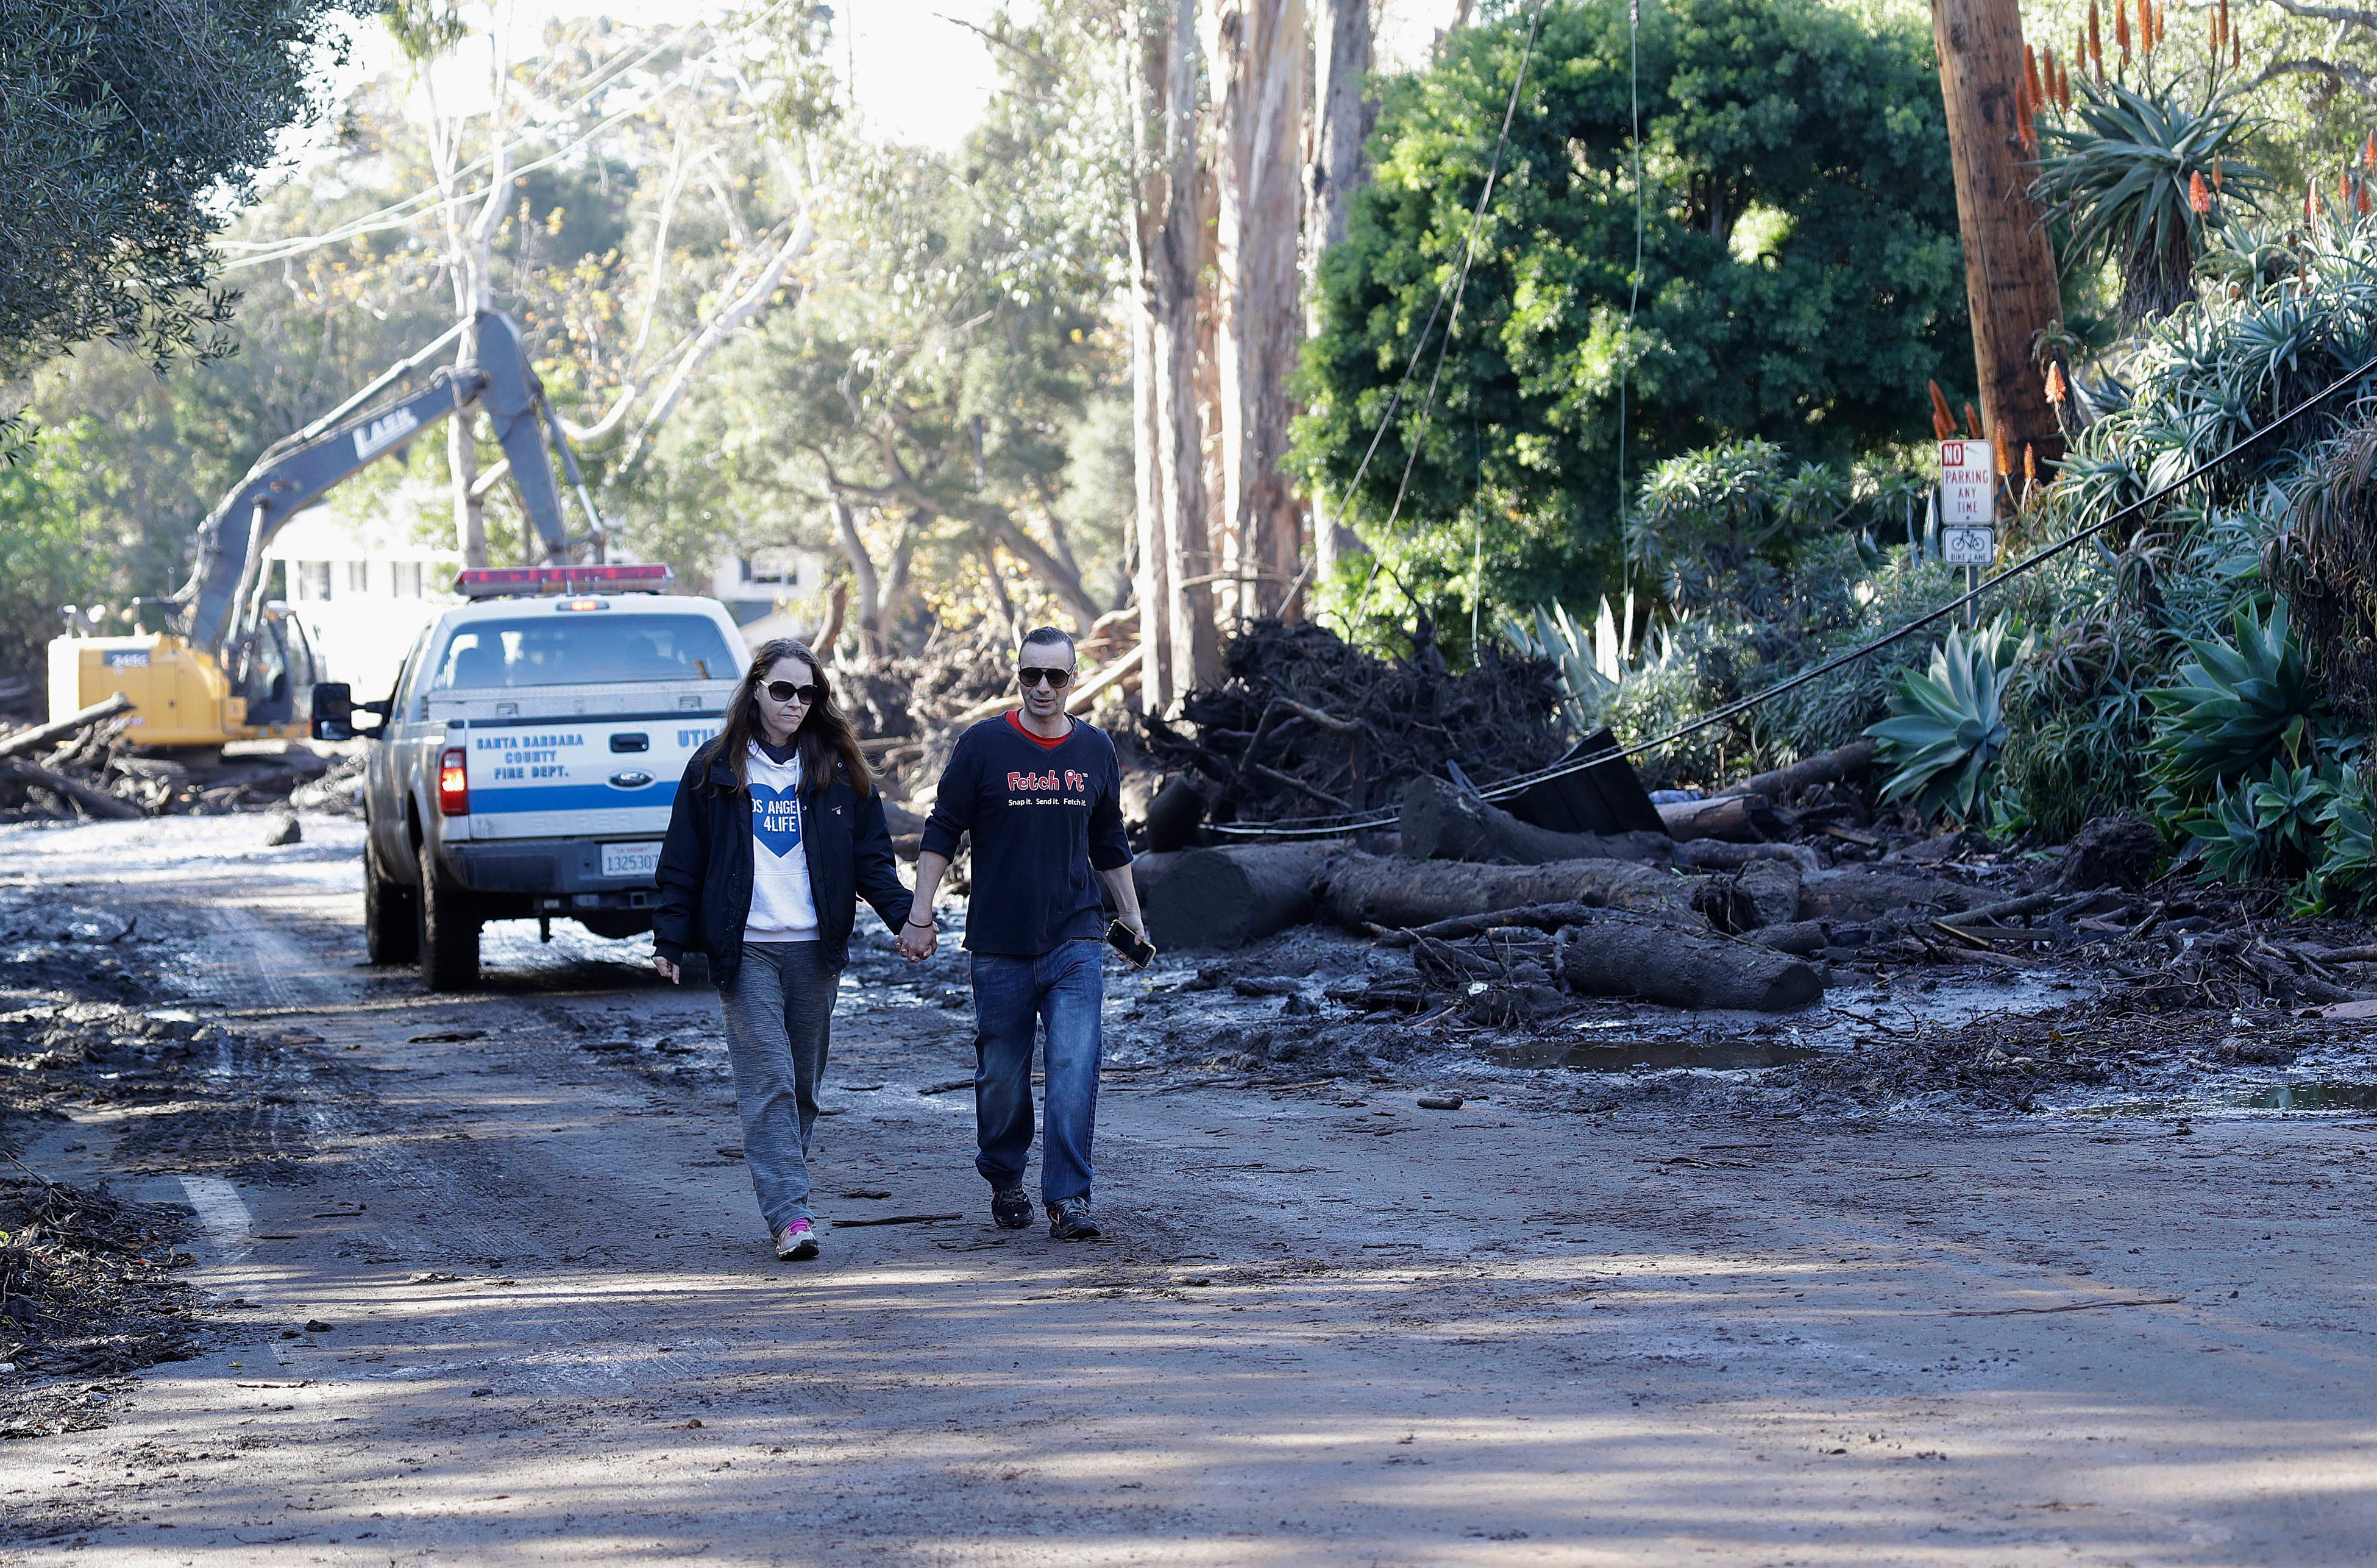 A woman and man walk along a road damaged by storms in Montecito, Calif., Wednesday, Jan. 10, 2018. Dozens of homes were swept away or heavily damaged and several people were killed Tuesday as downpours sent mud and boulders roaring down hills stripped of vegetation by a gigantic wildfire that raged in Southern California last month. (AP Photo/Marcio Jose Sanchez)